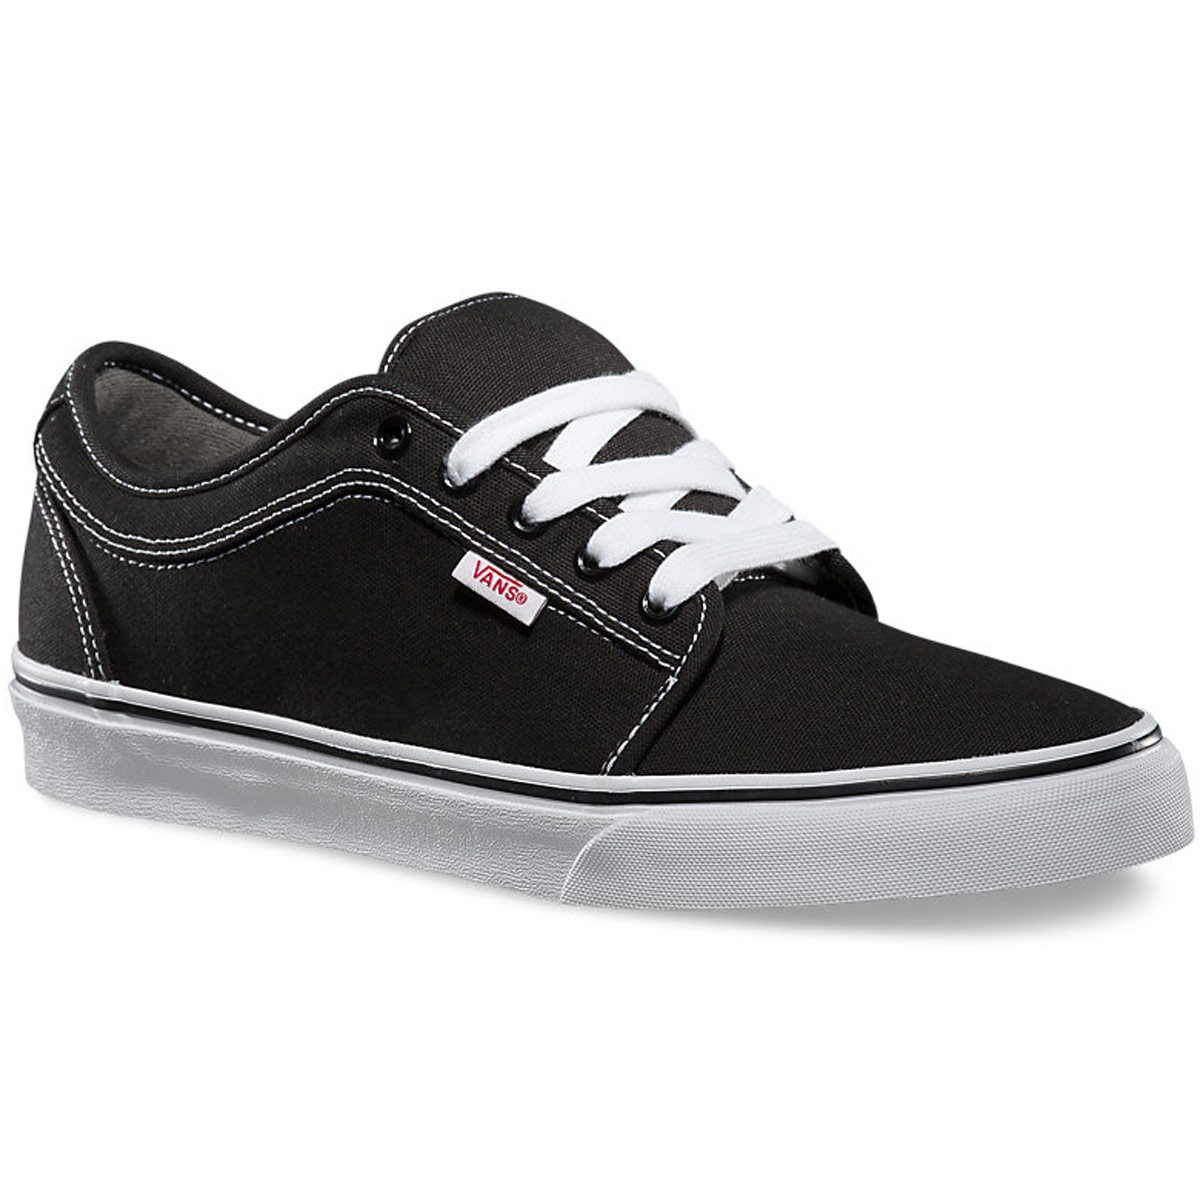 Vans Chukka Low Shoes - Black/White - 10.0